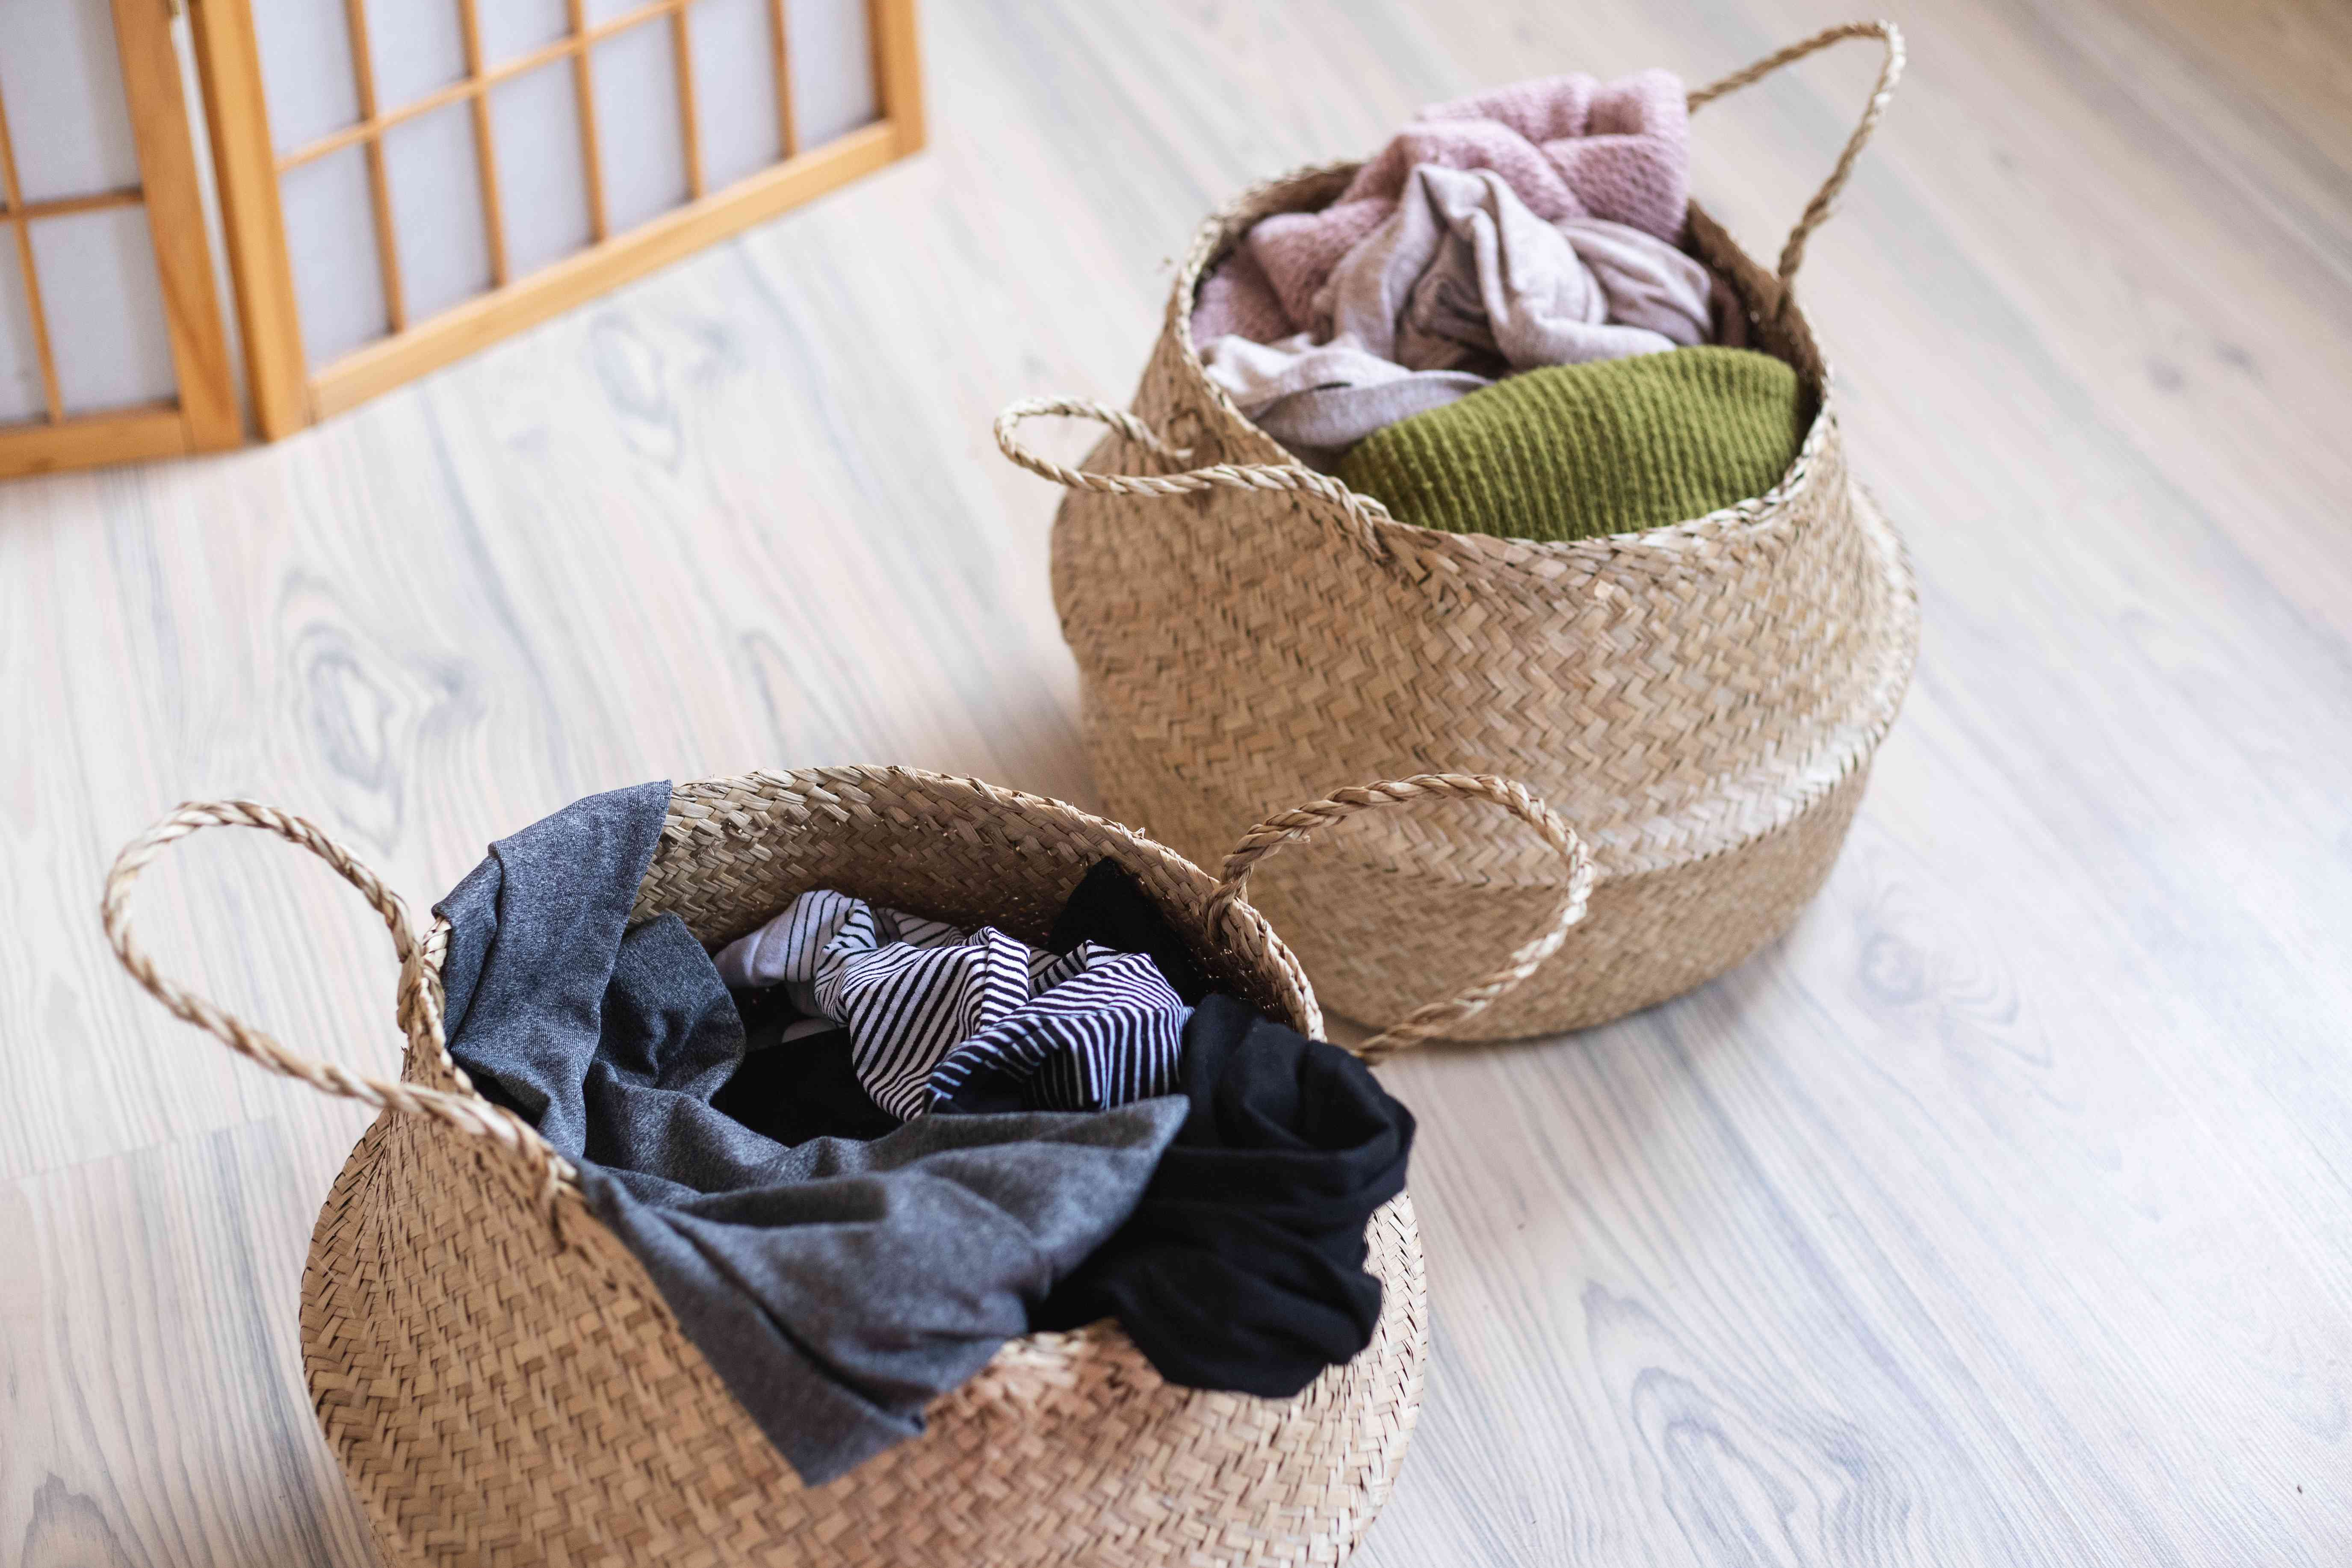 two woven basket laundry hampers, separated into knitwear and workout gear clothing